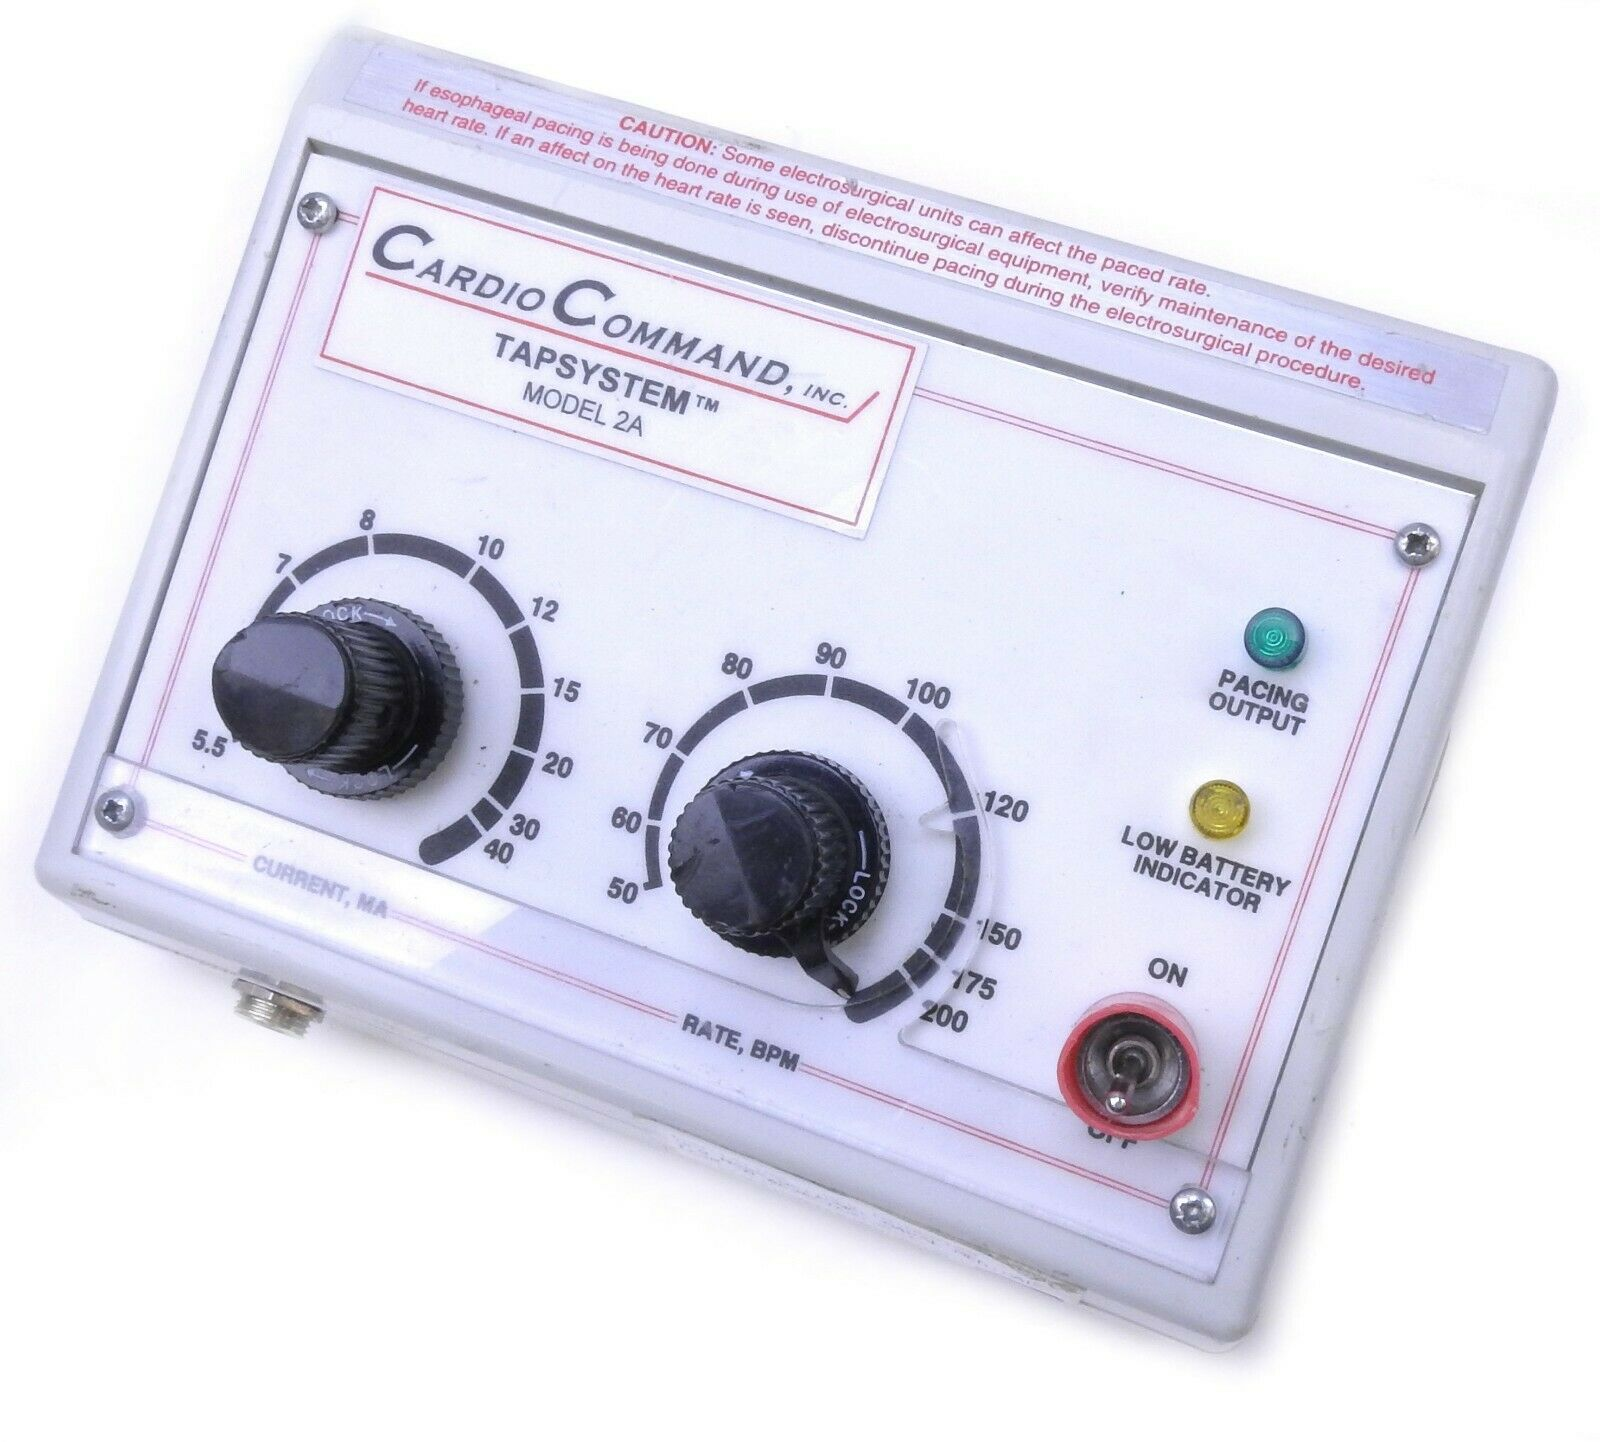 Cardio Command Esophageal Pulse Generator